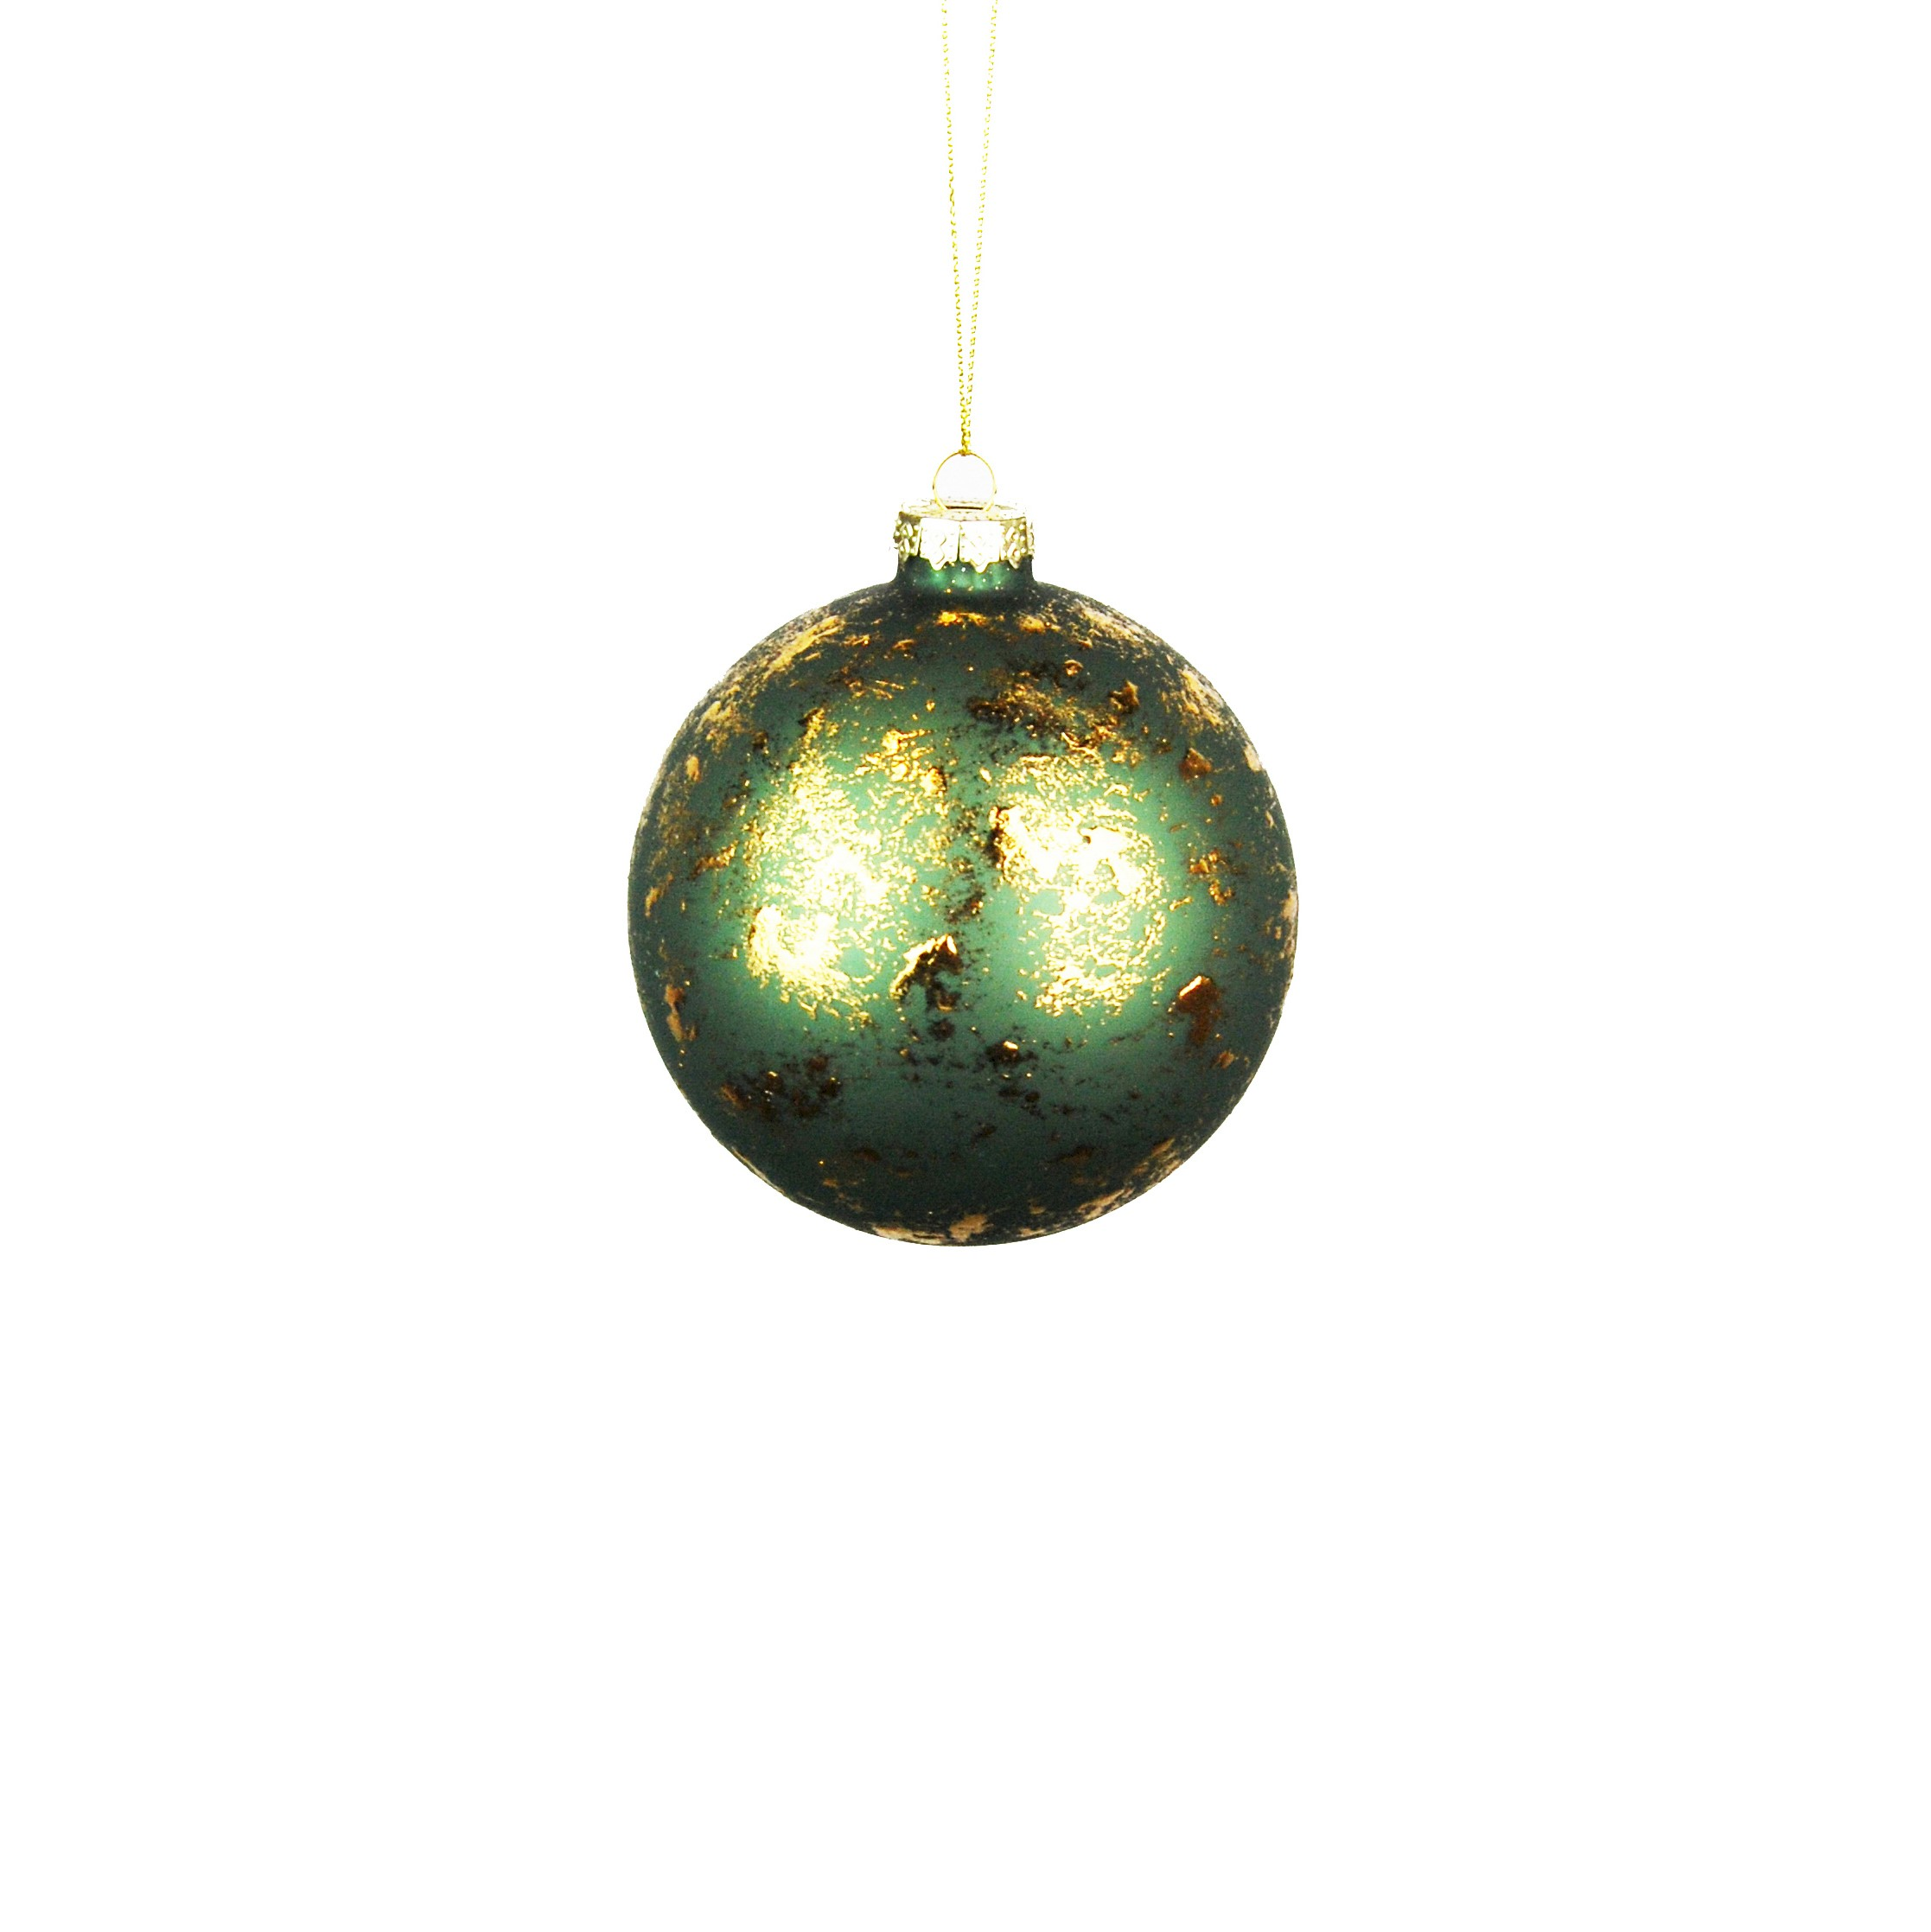 HANG. GREEN/GOLD BAUBLE